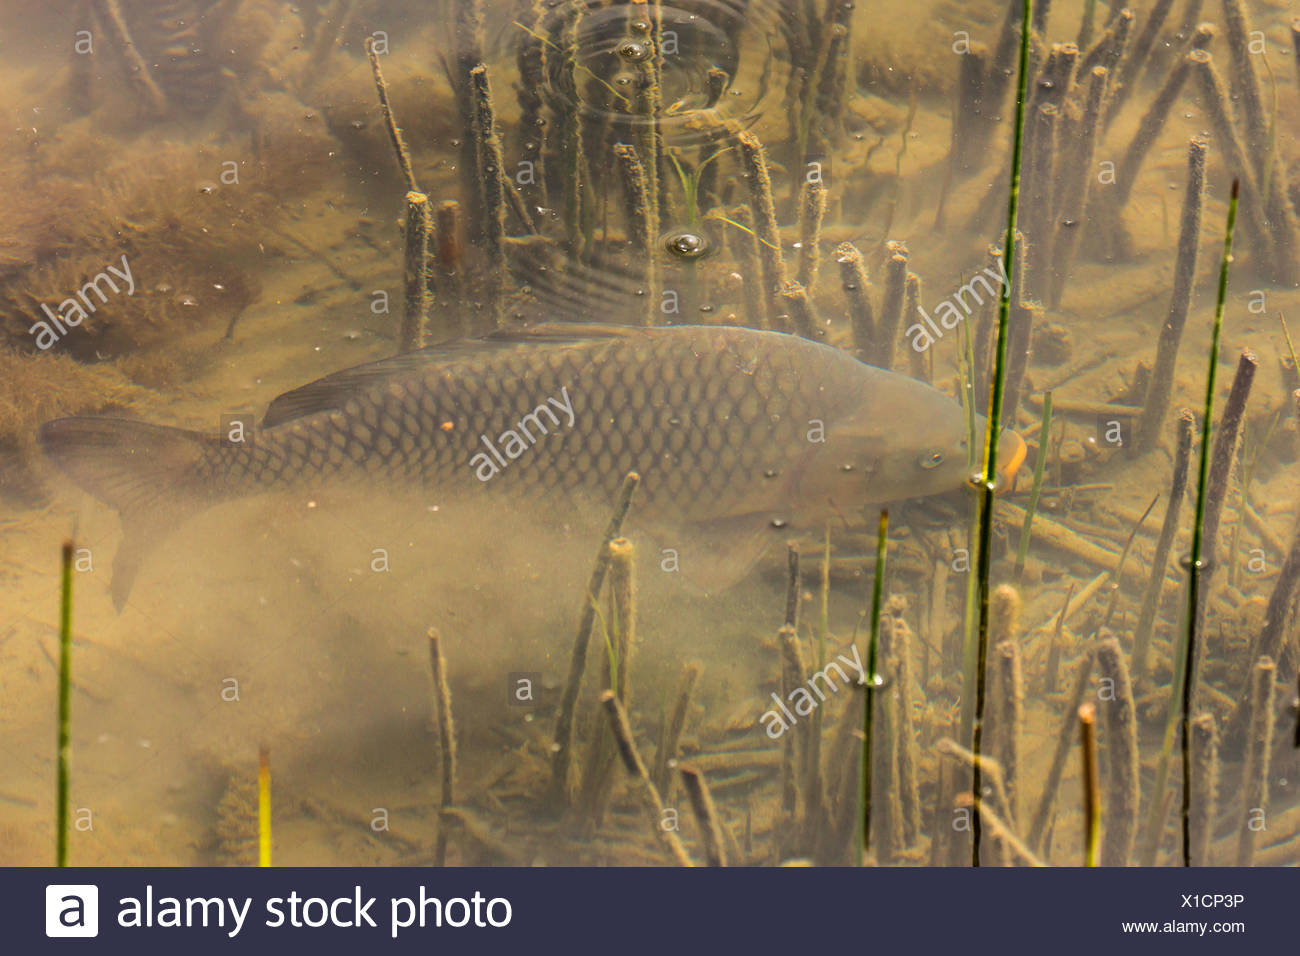 carp, common carp, European carp (Cyprinus carpio), carp dabbles at the bottom, Germany, Bavaria Stock Photo